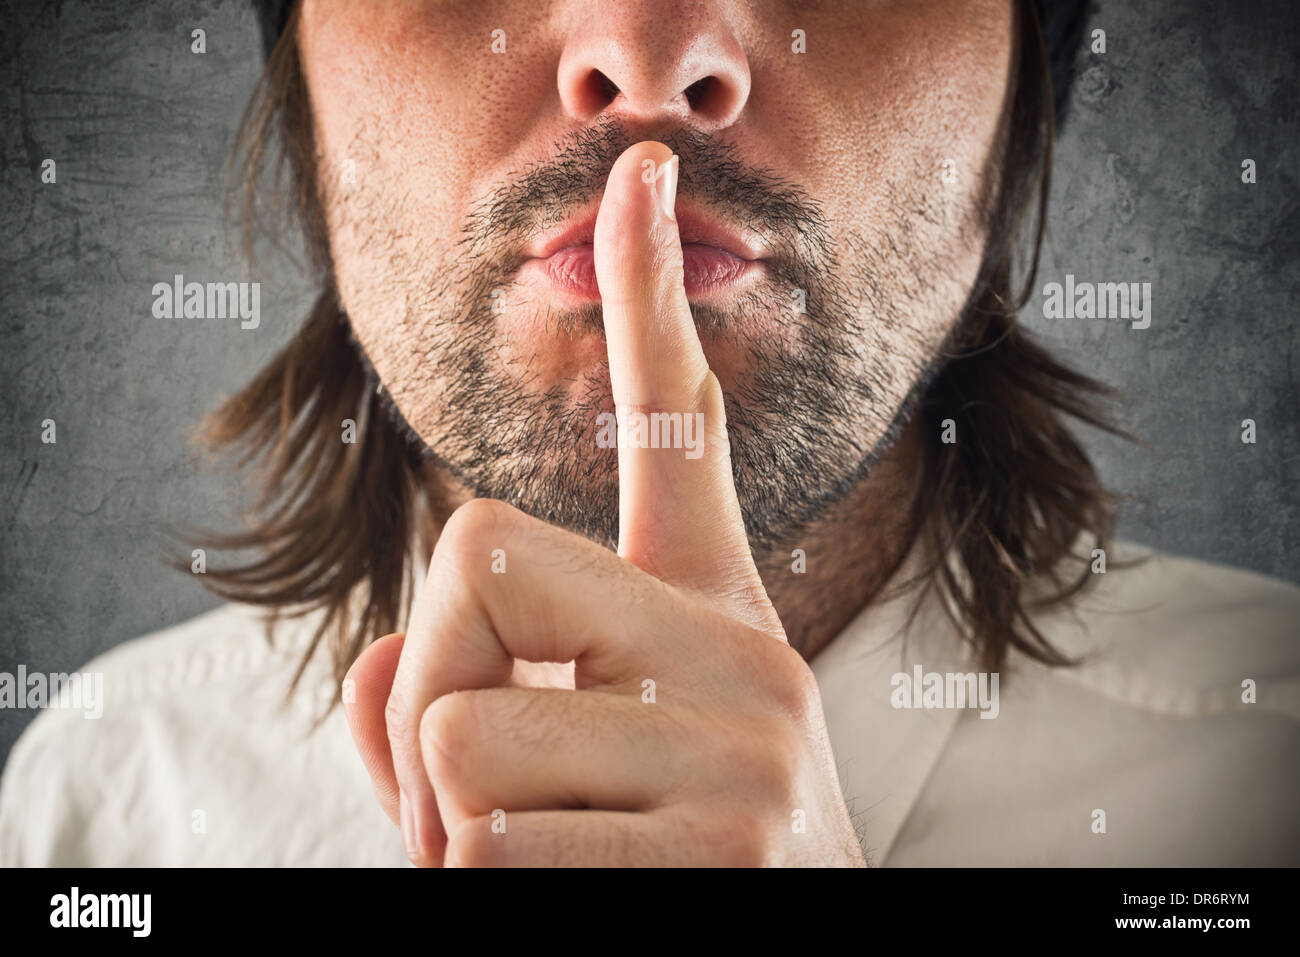 Businessman making hush gesture, finger on mouth for silence. - Stock Image